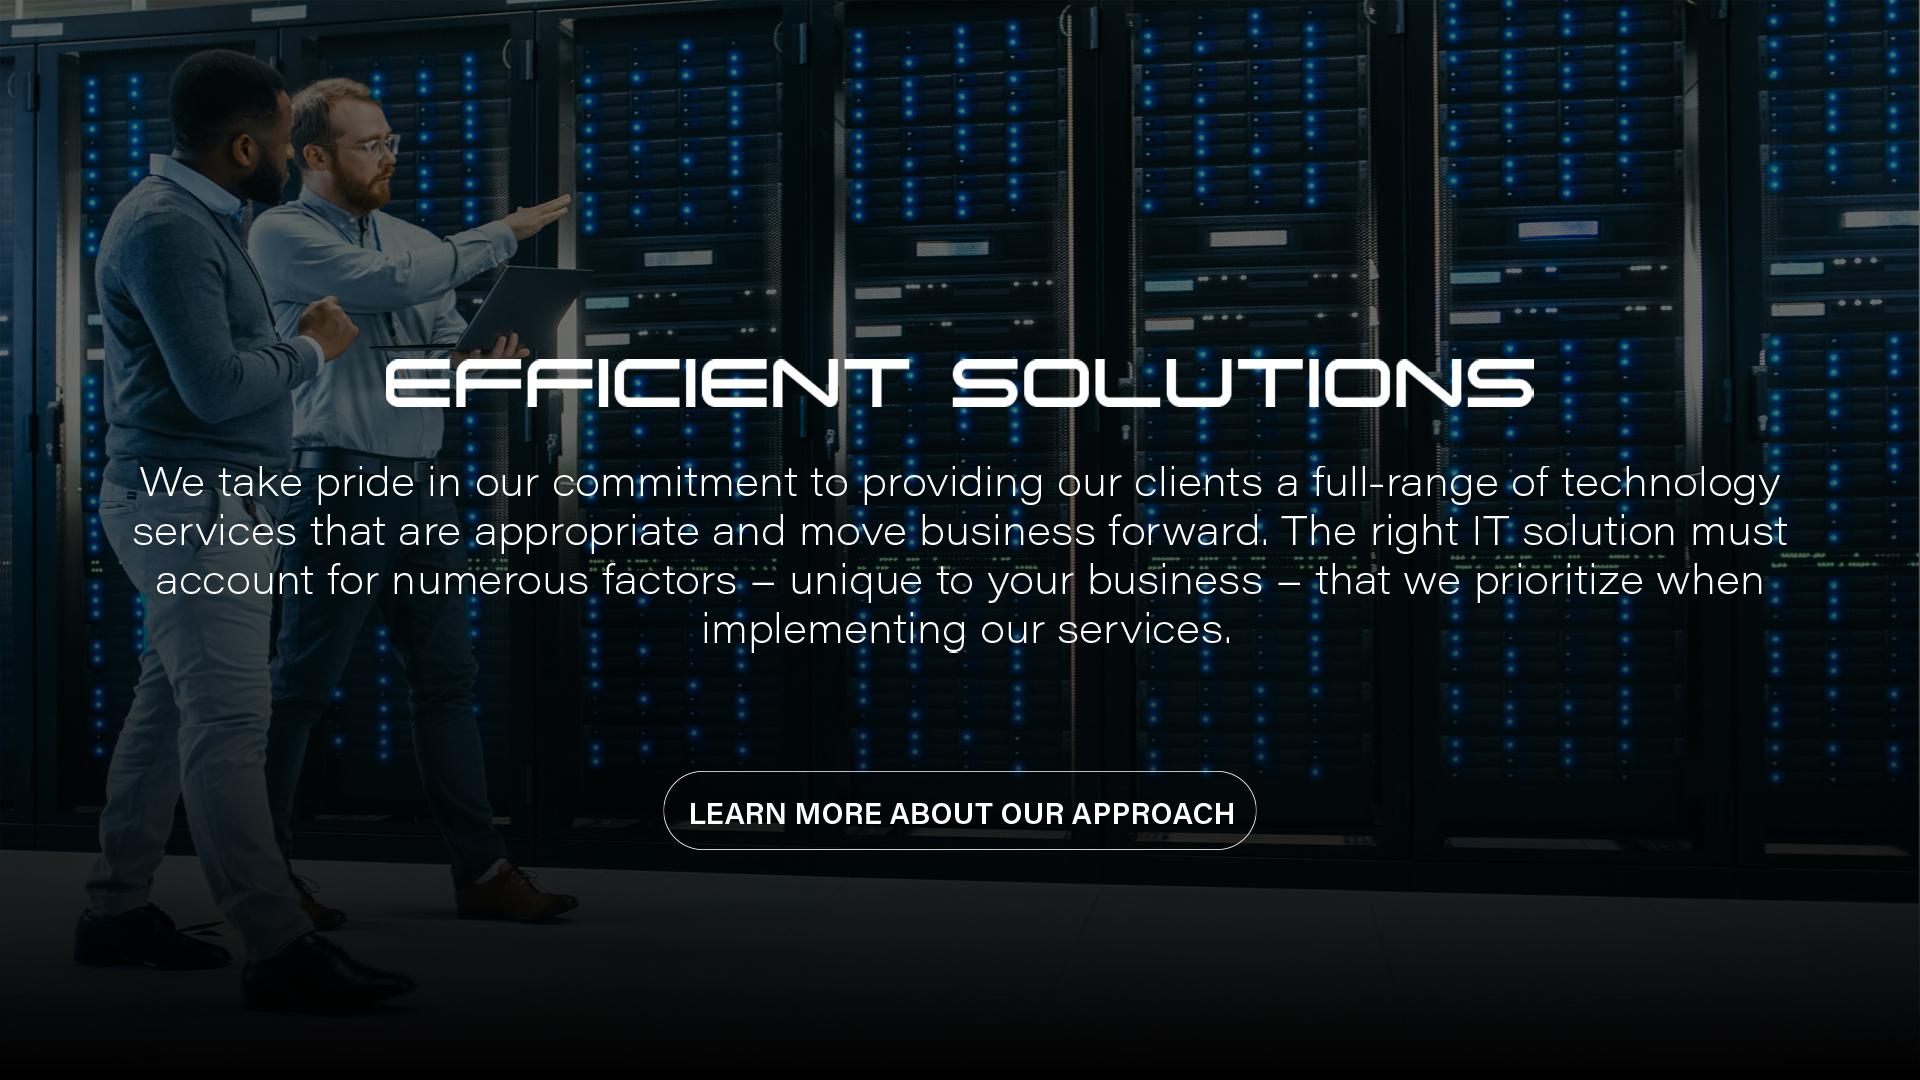 Efficient Solutions | We take pride in our commitment to providing our clients a full-range of technology services that are appropriate and move business forward. The right IT solutions must account for numerous factors - unique to your business - that we prioritize when implementing our services.